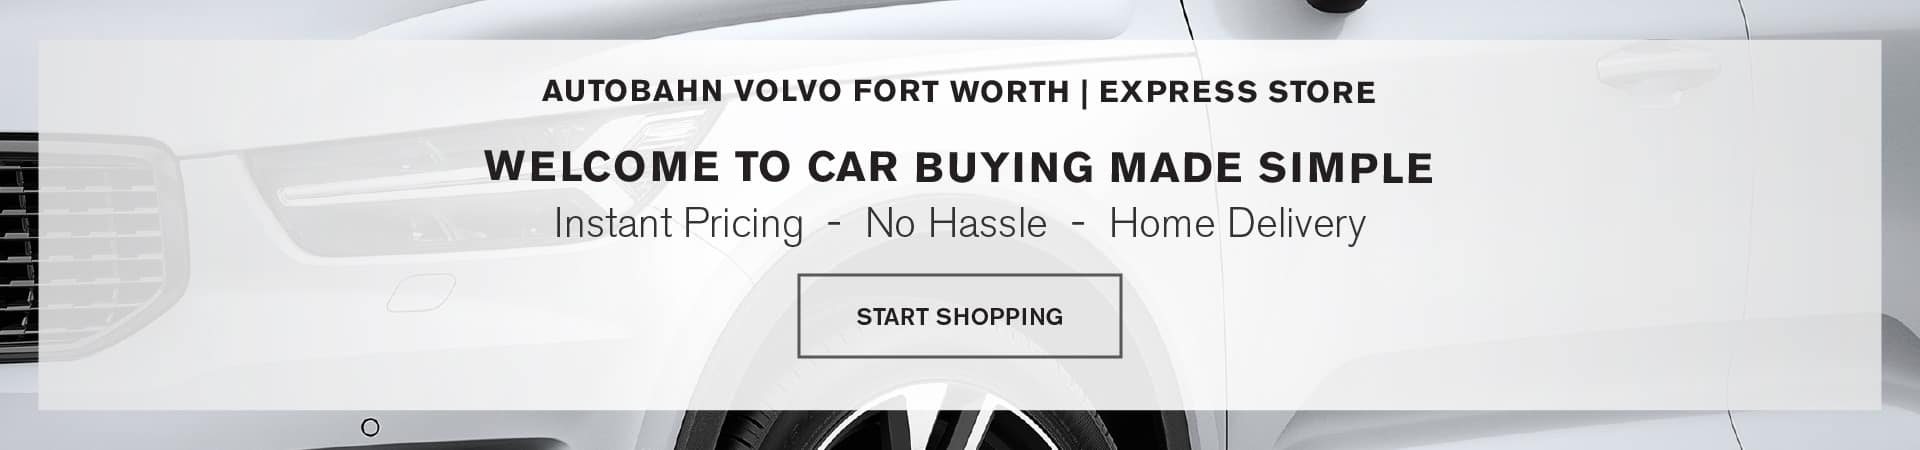 Autobahn Volvo Fort Worth | A Seamless Online Buying Experience